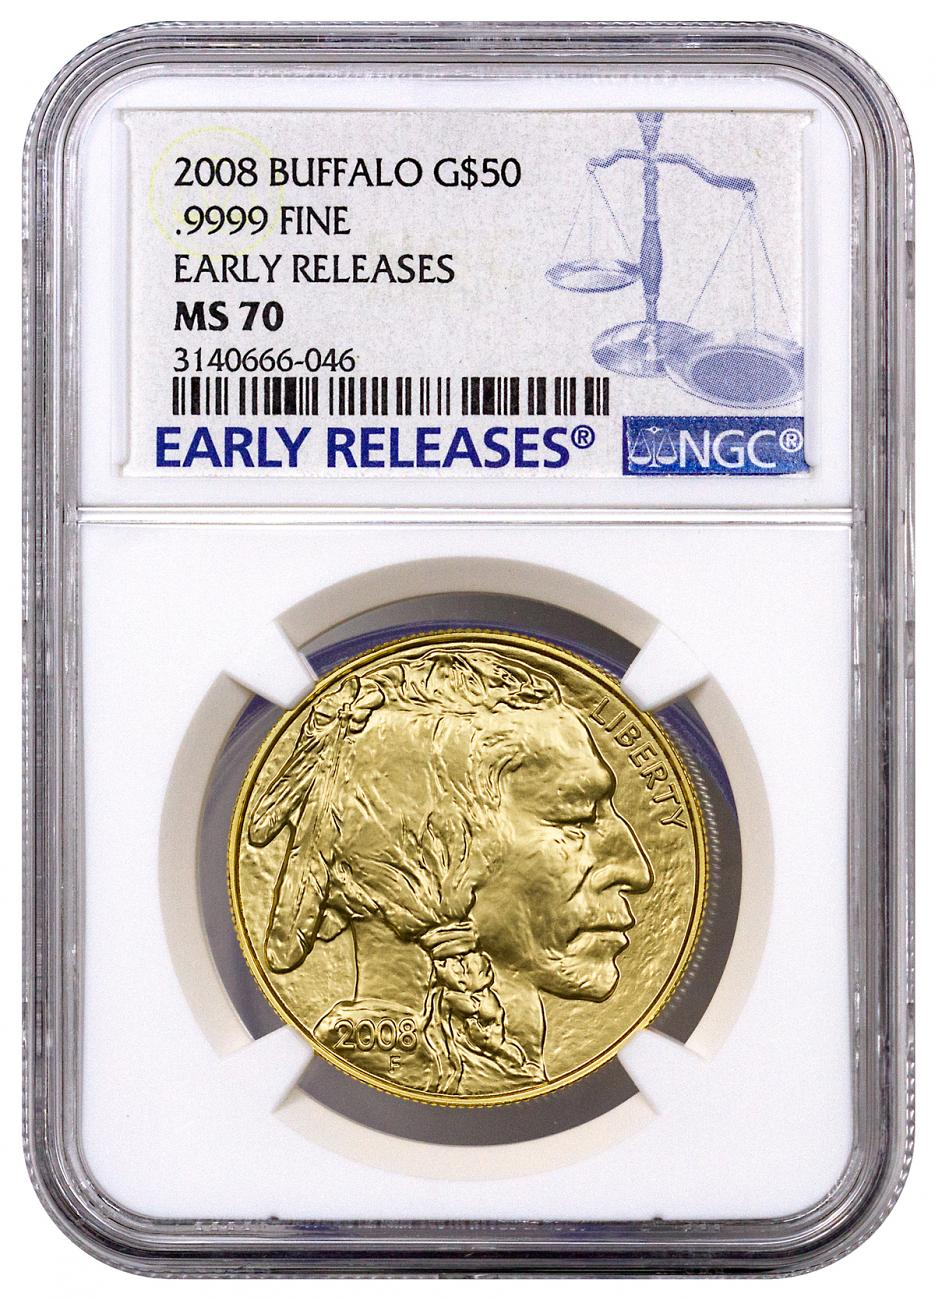 2008 1 oz Gold Buffalo $50 Coin NGC MS70 ER